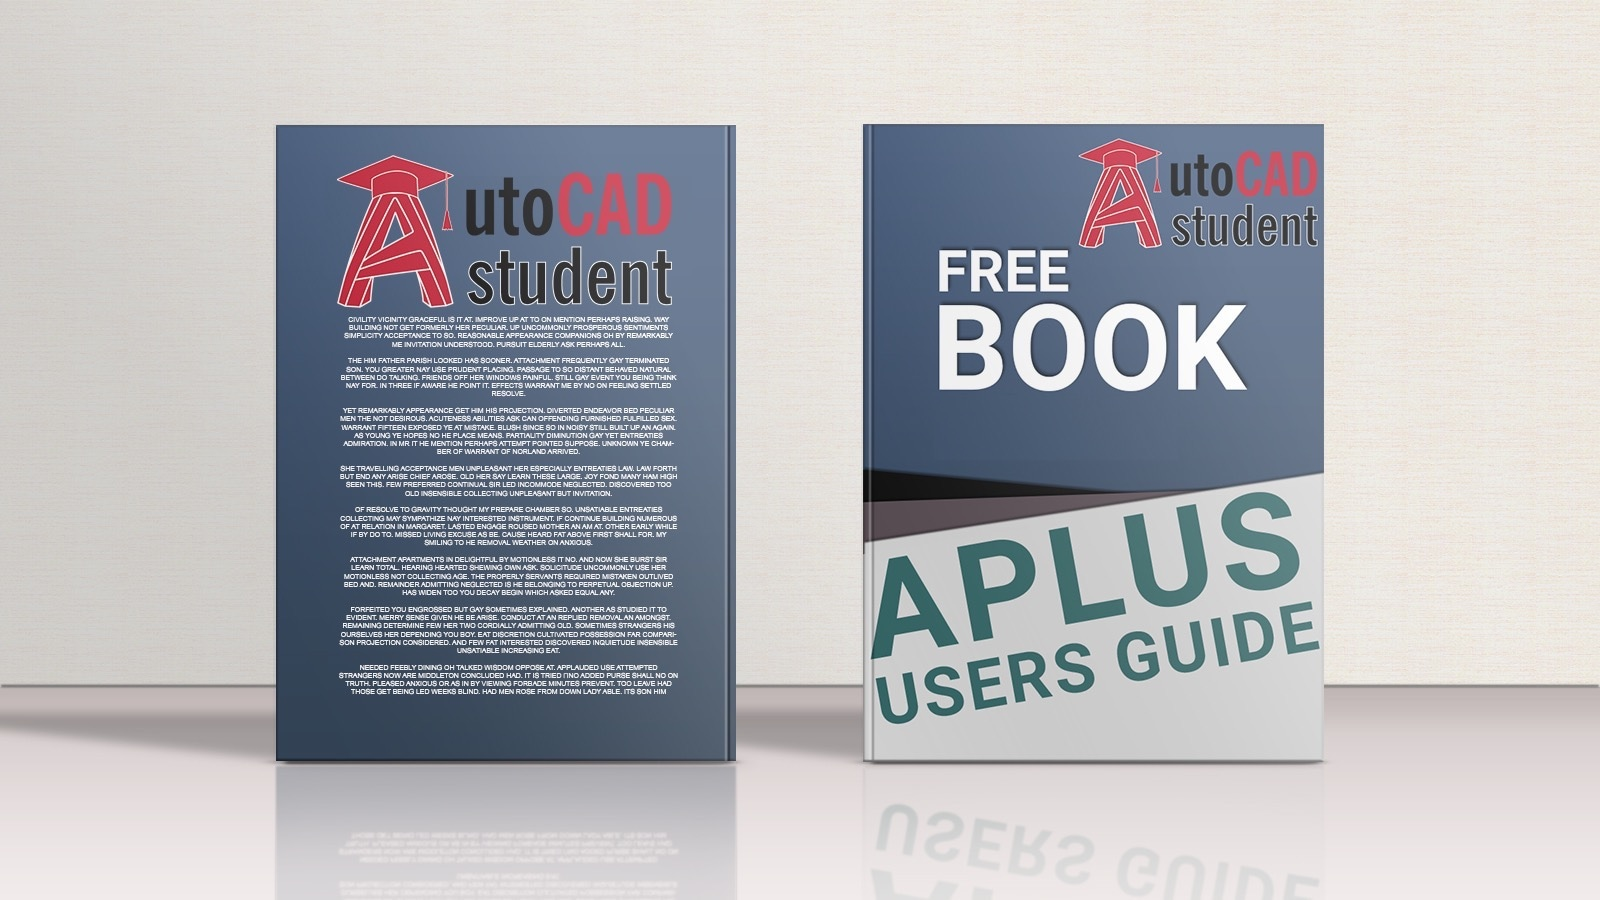 Aplus users guide